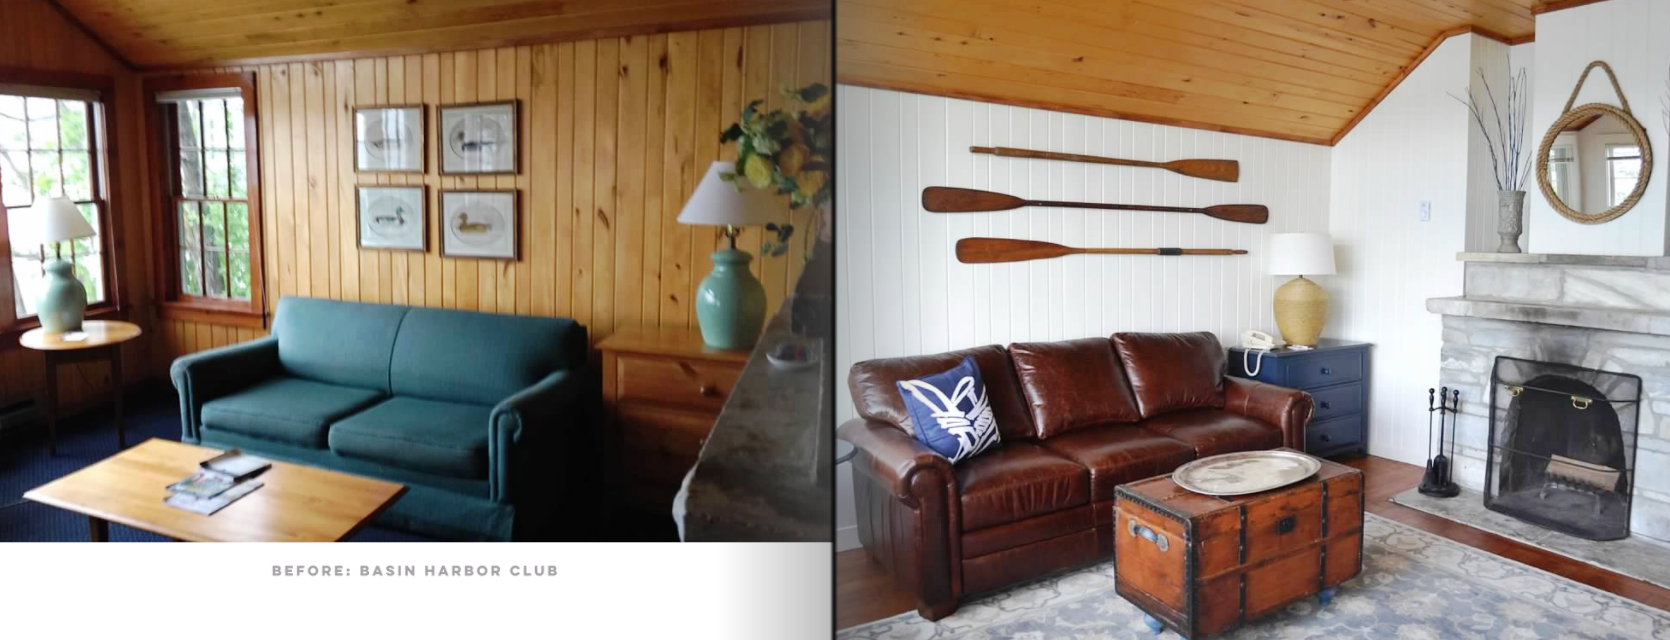 Renovation of Cottage at Basin Harbor Club Interior Design by Joanne Palmisano.png